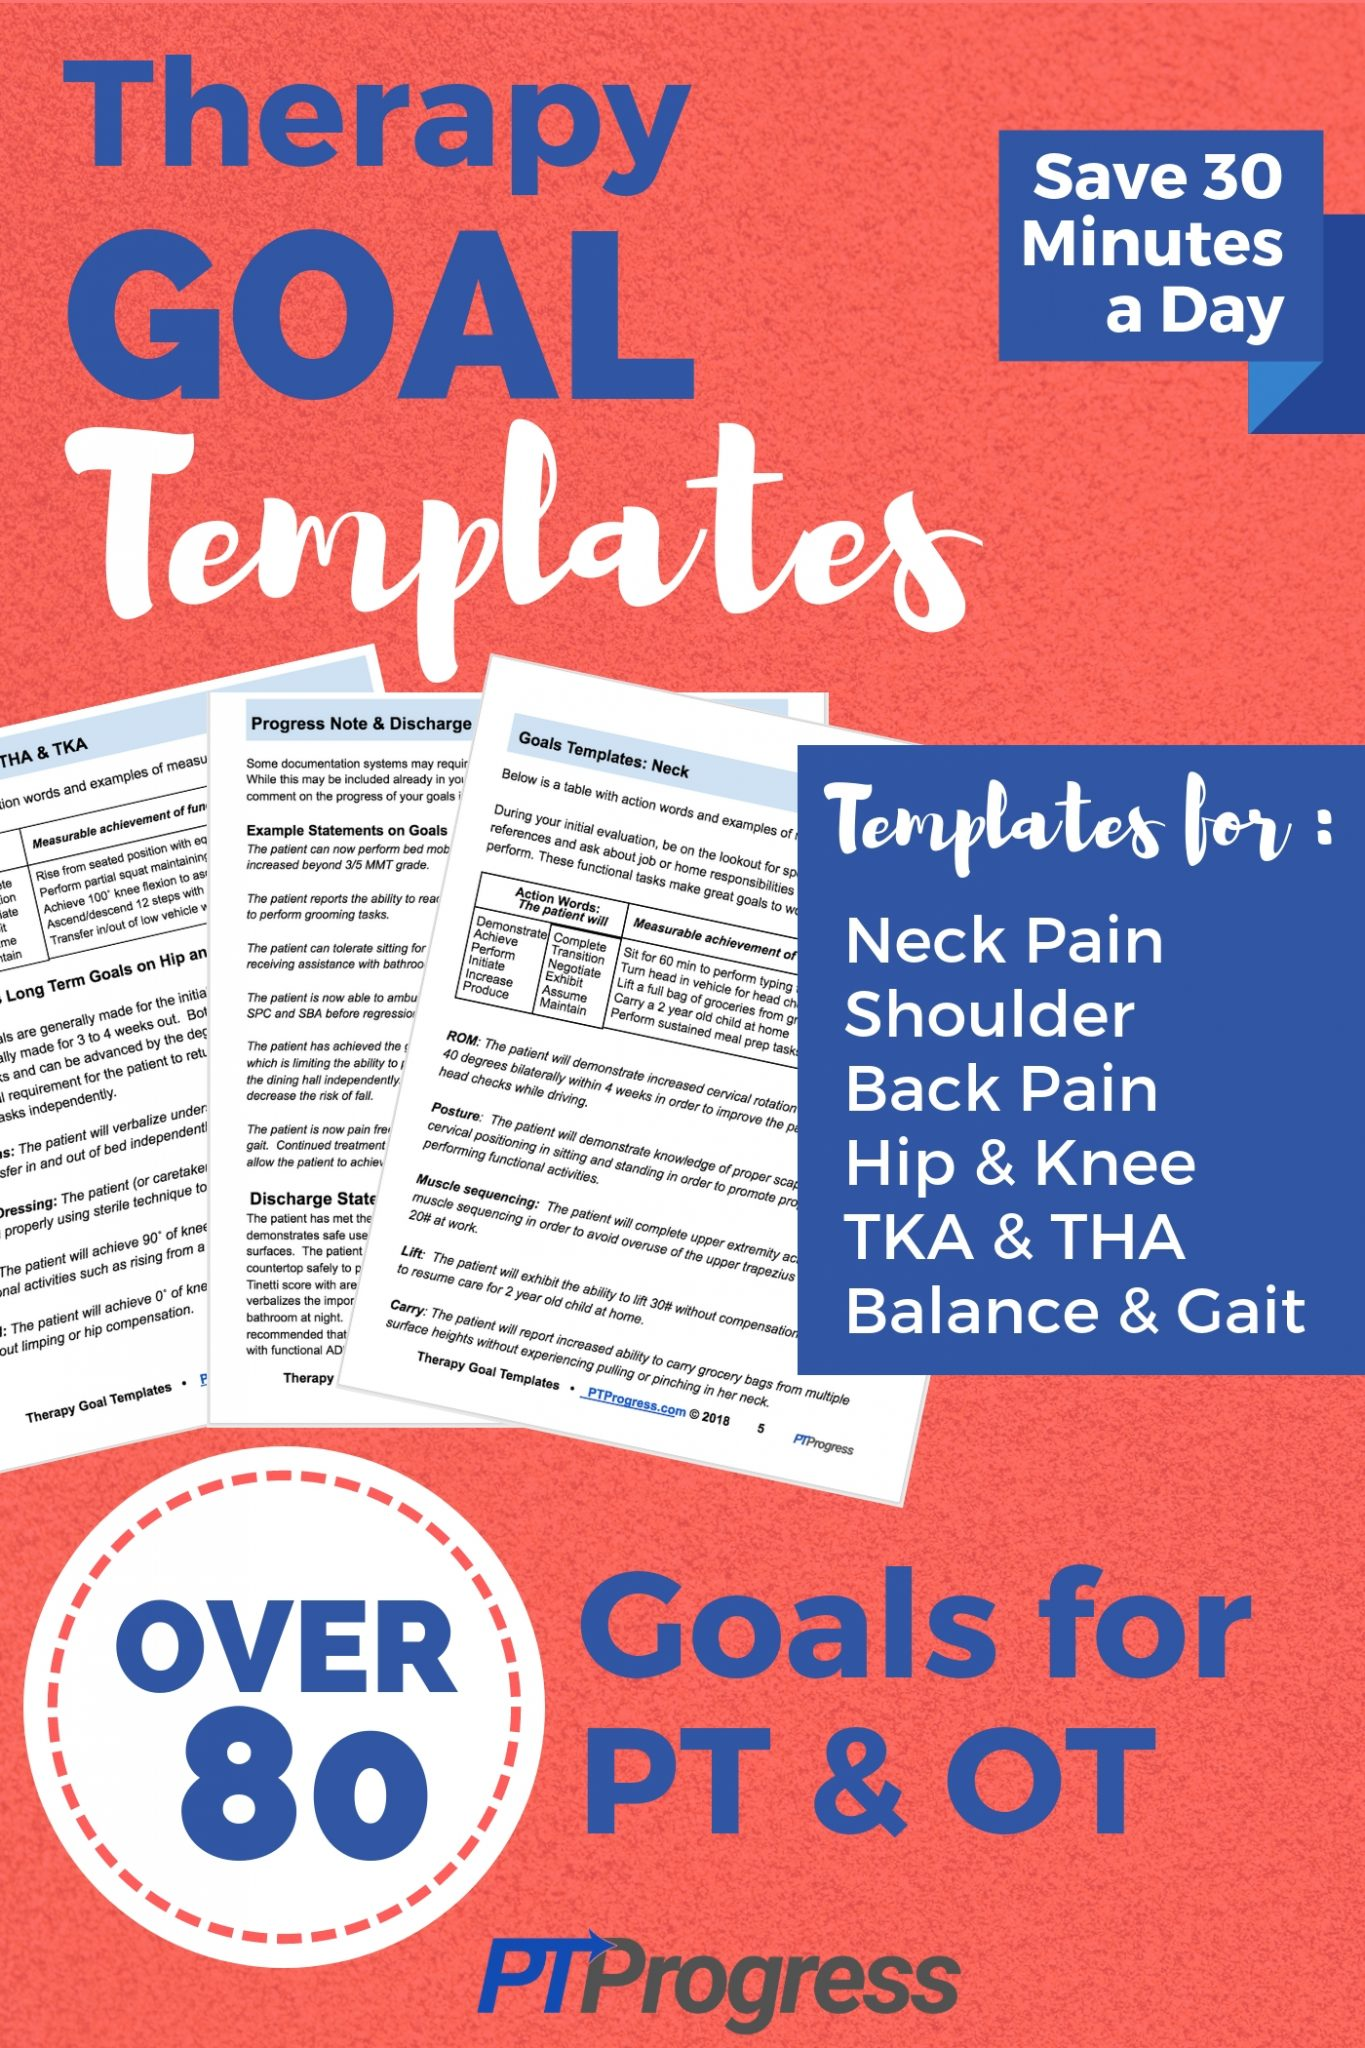 Physical Therapy And Occupational Therapy Goal Templates